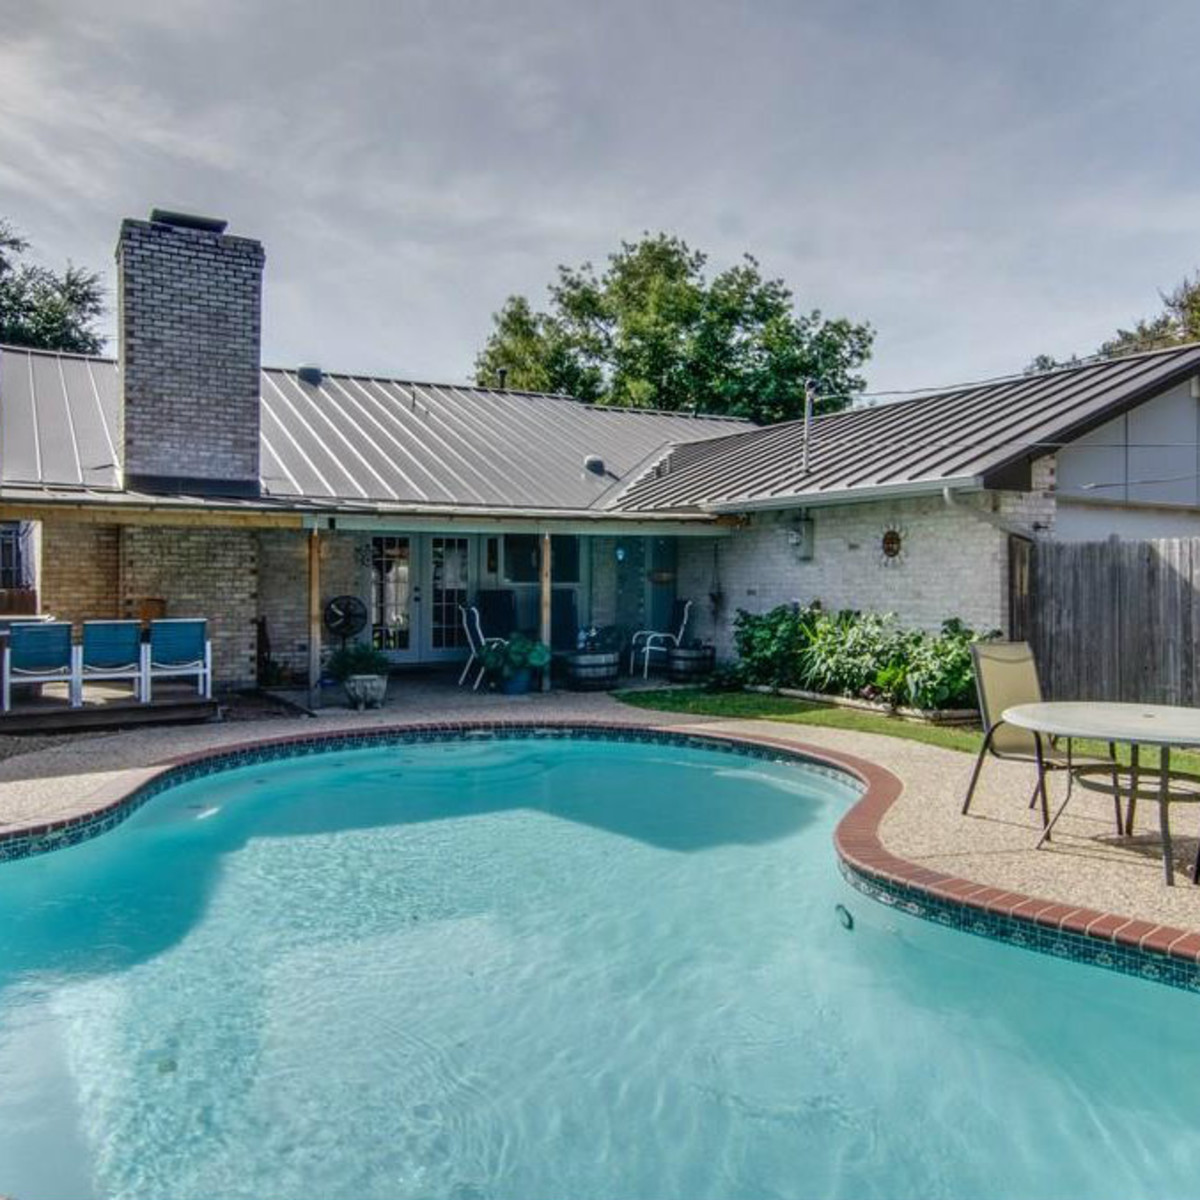 3065 Kinkaid Dr. pool in Dallas